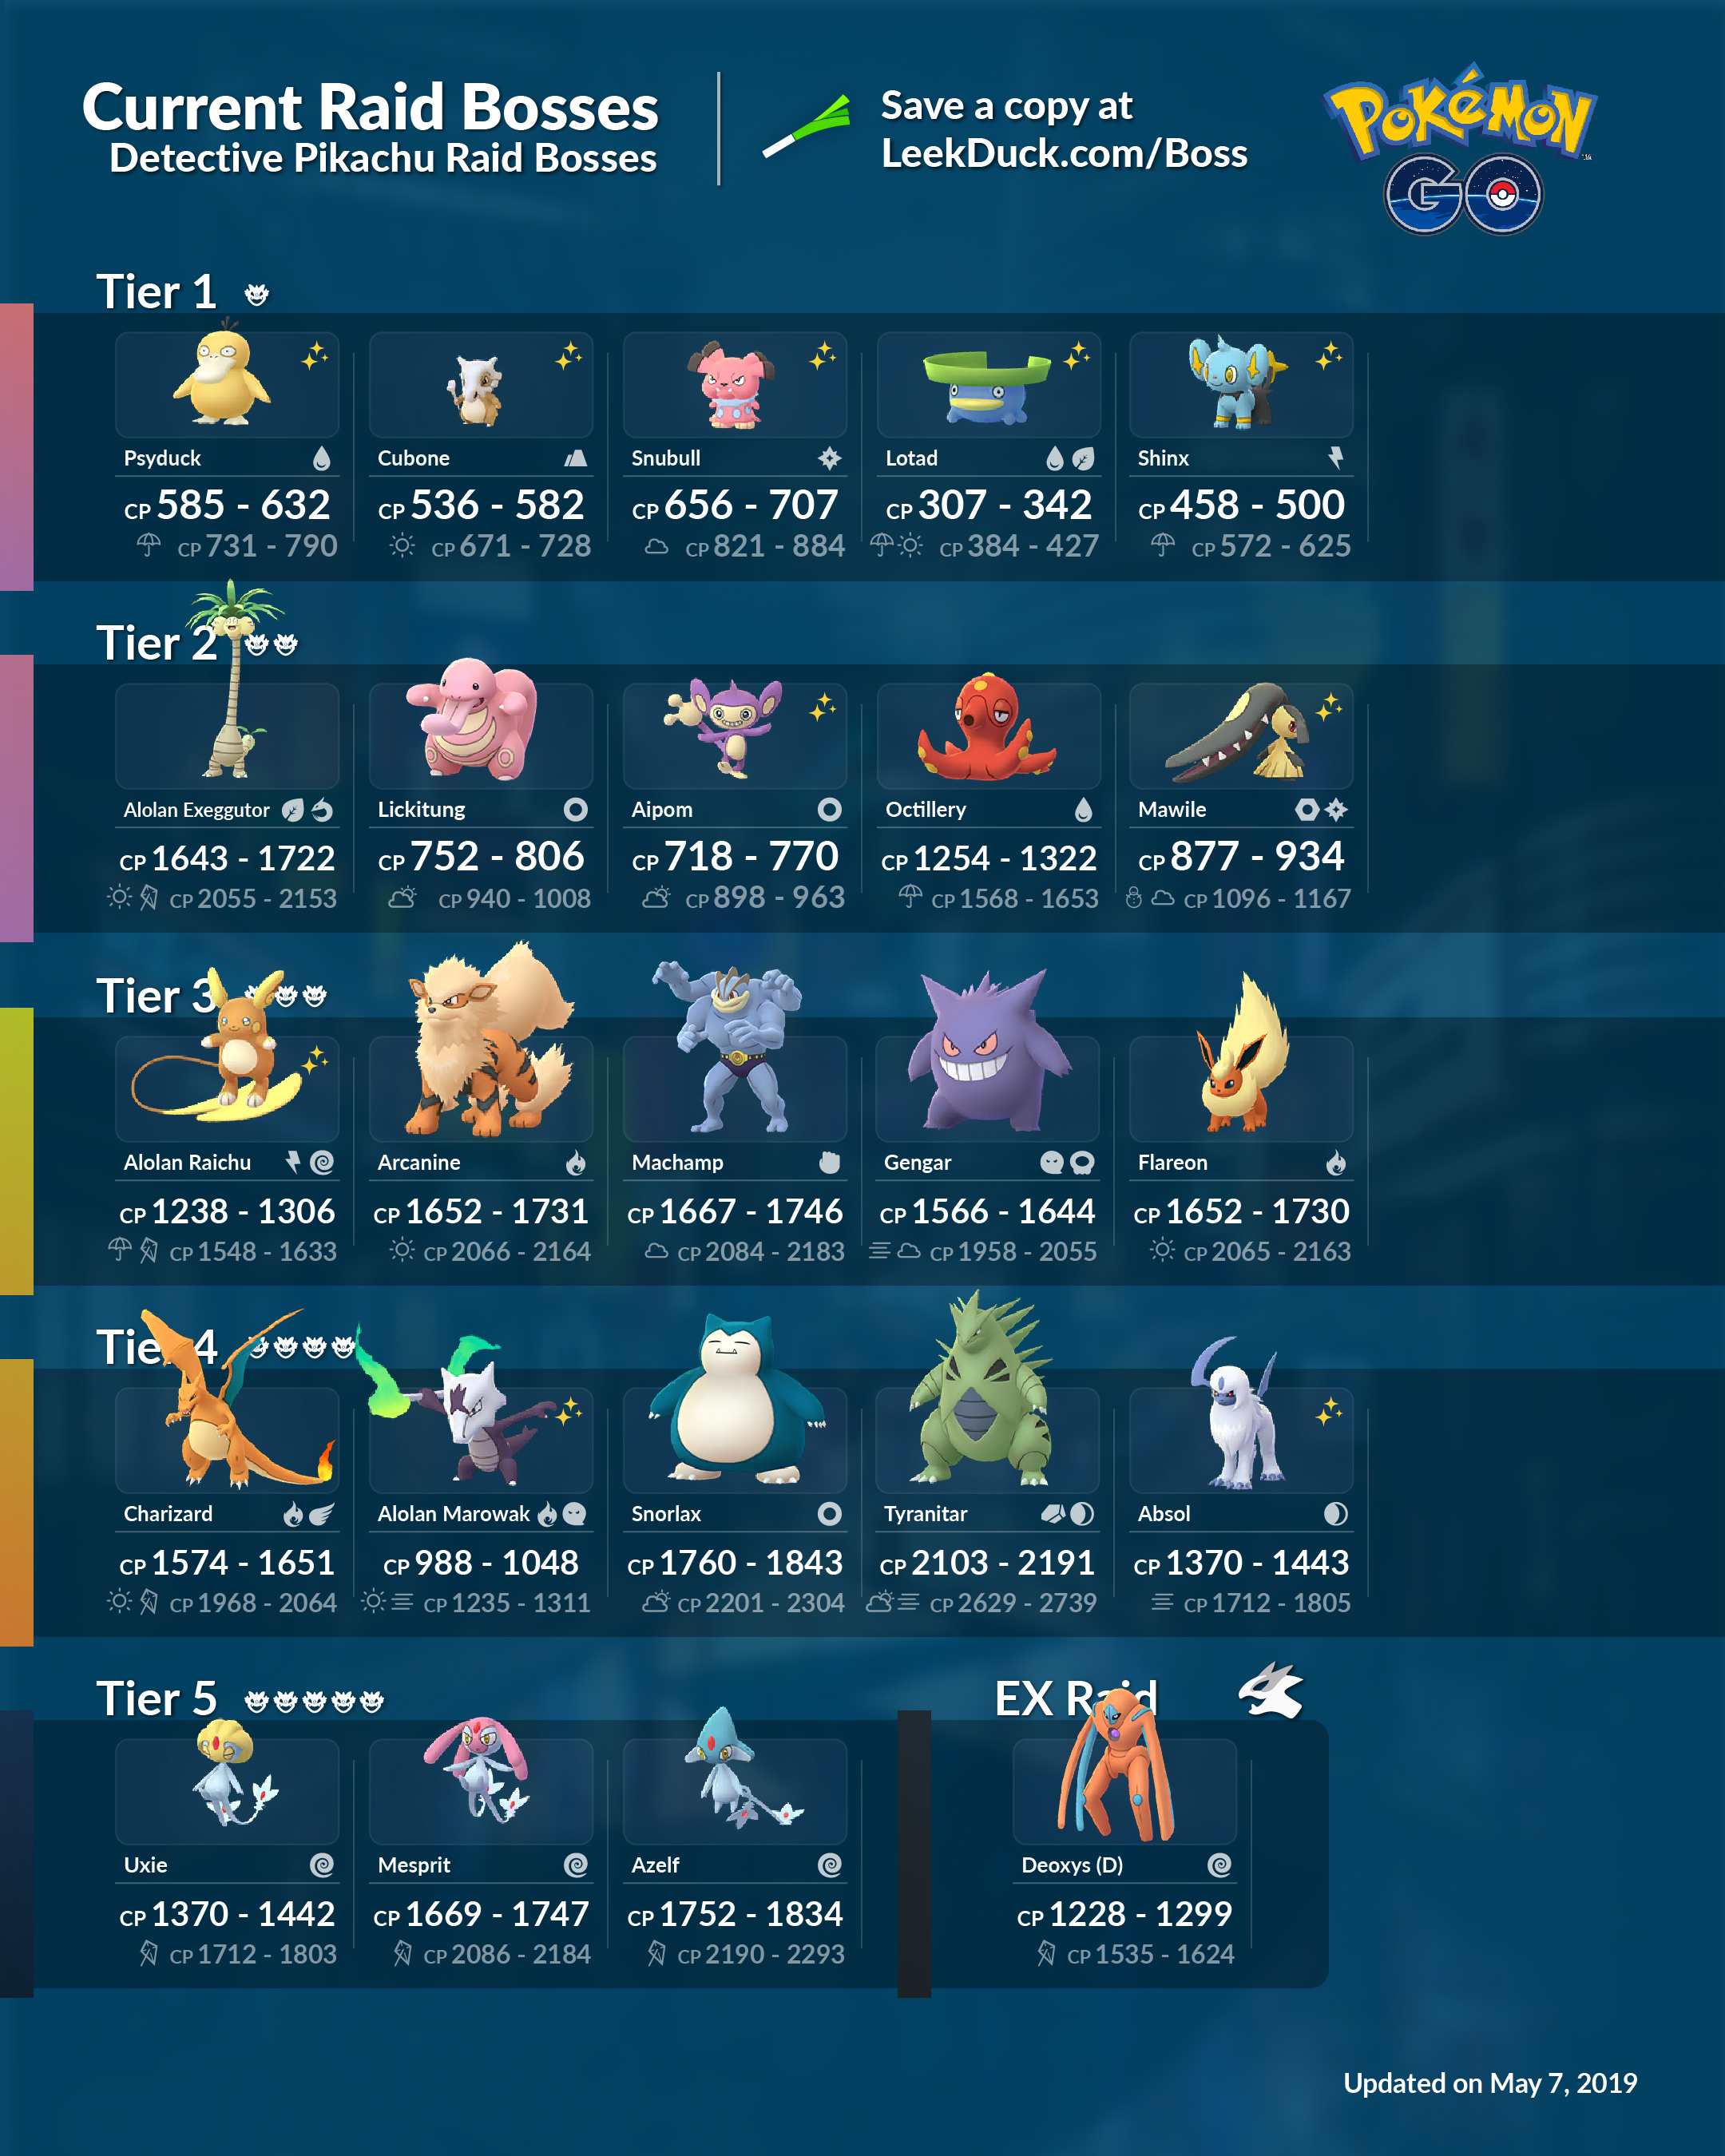 Pokemon Go Raid Bosses: current raids, counters and more